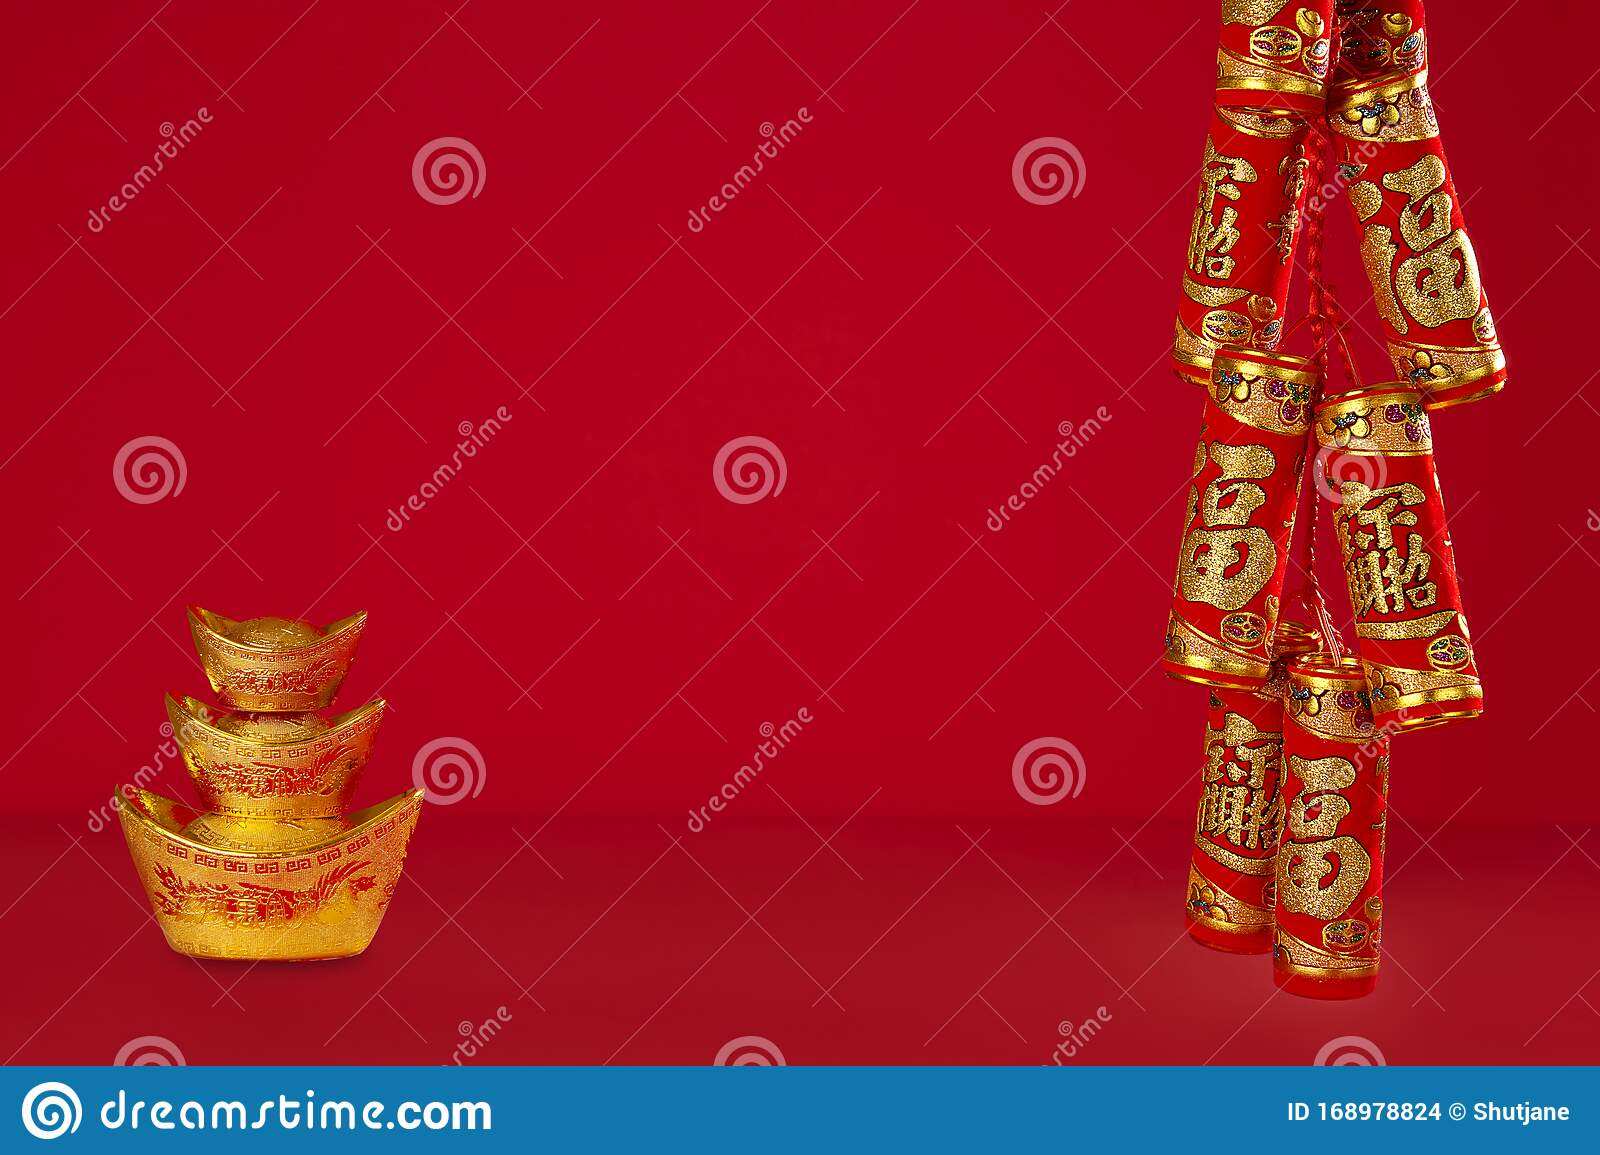 Chinese New Year Or Lunar New Year. Stock Photo - Image of ...